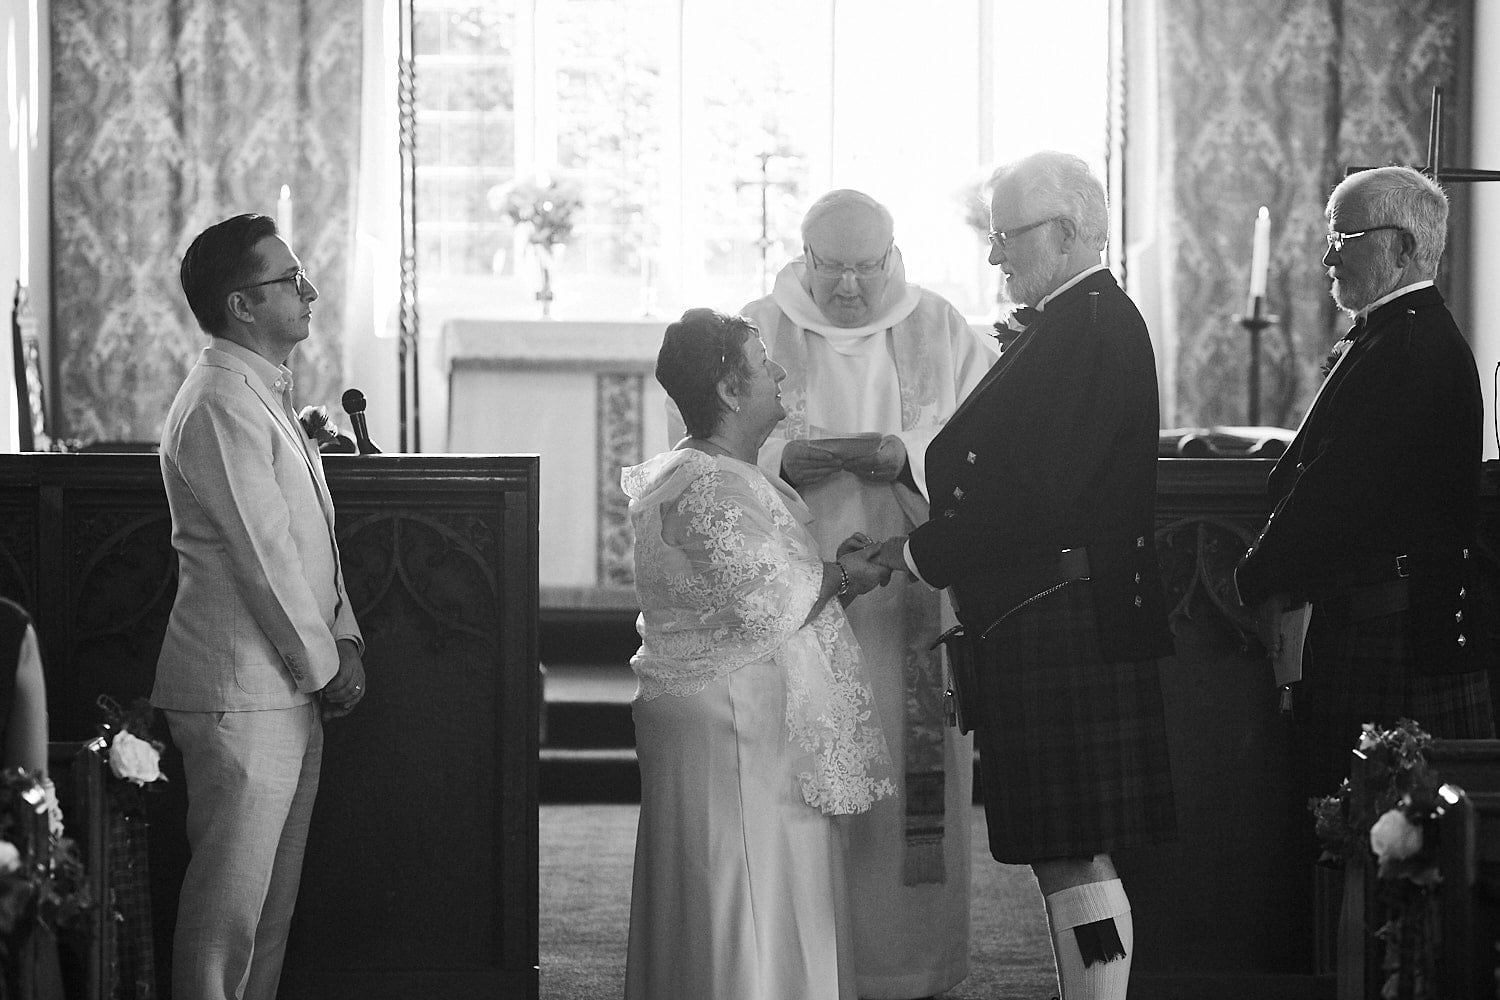 An mature couple exchange vows on their wedding day at Partney Church, Spilsby, Lincolnshire